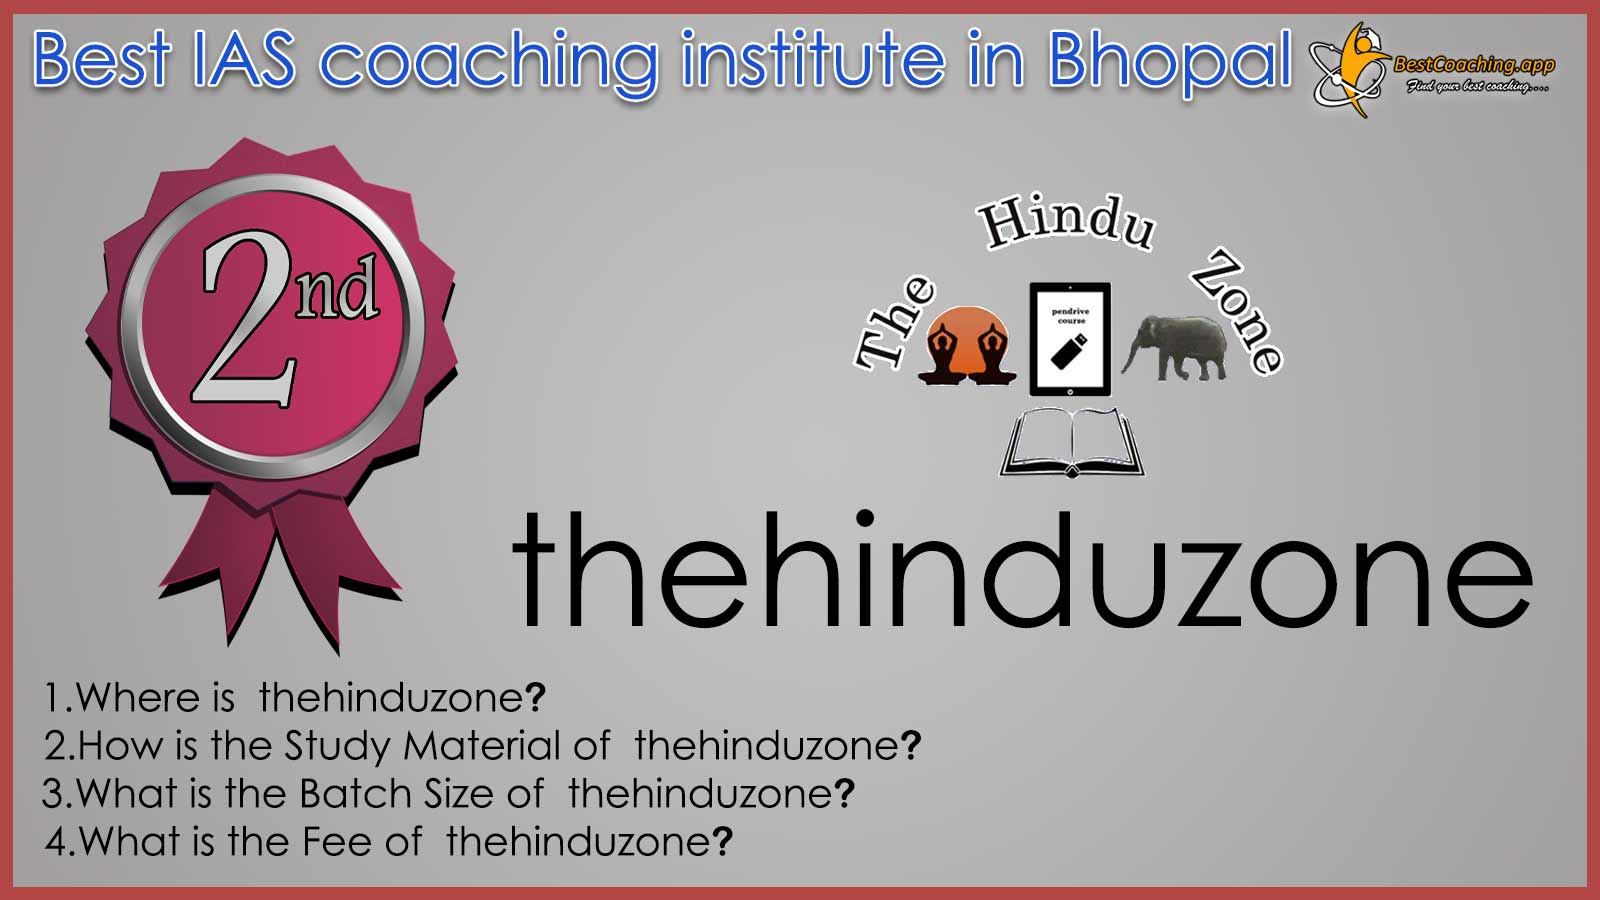 thehinduzone Online IAS Coaching